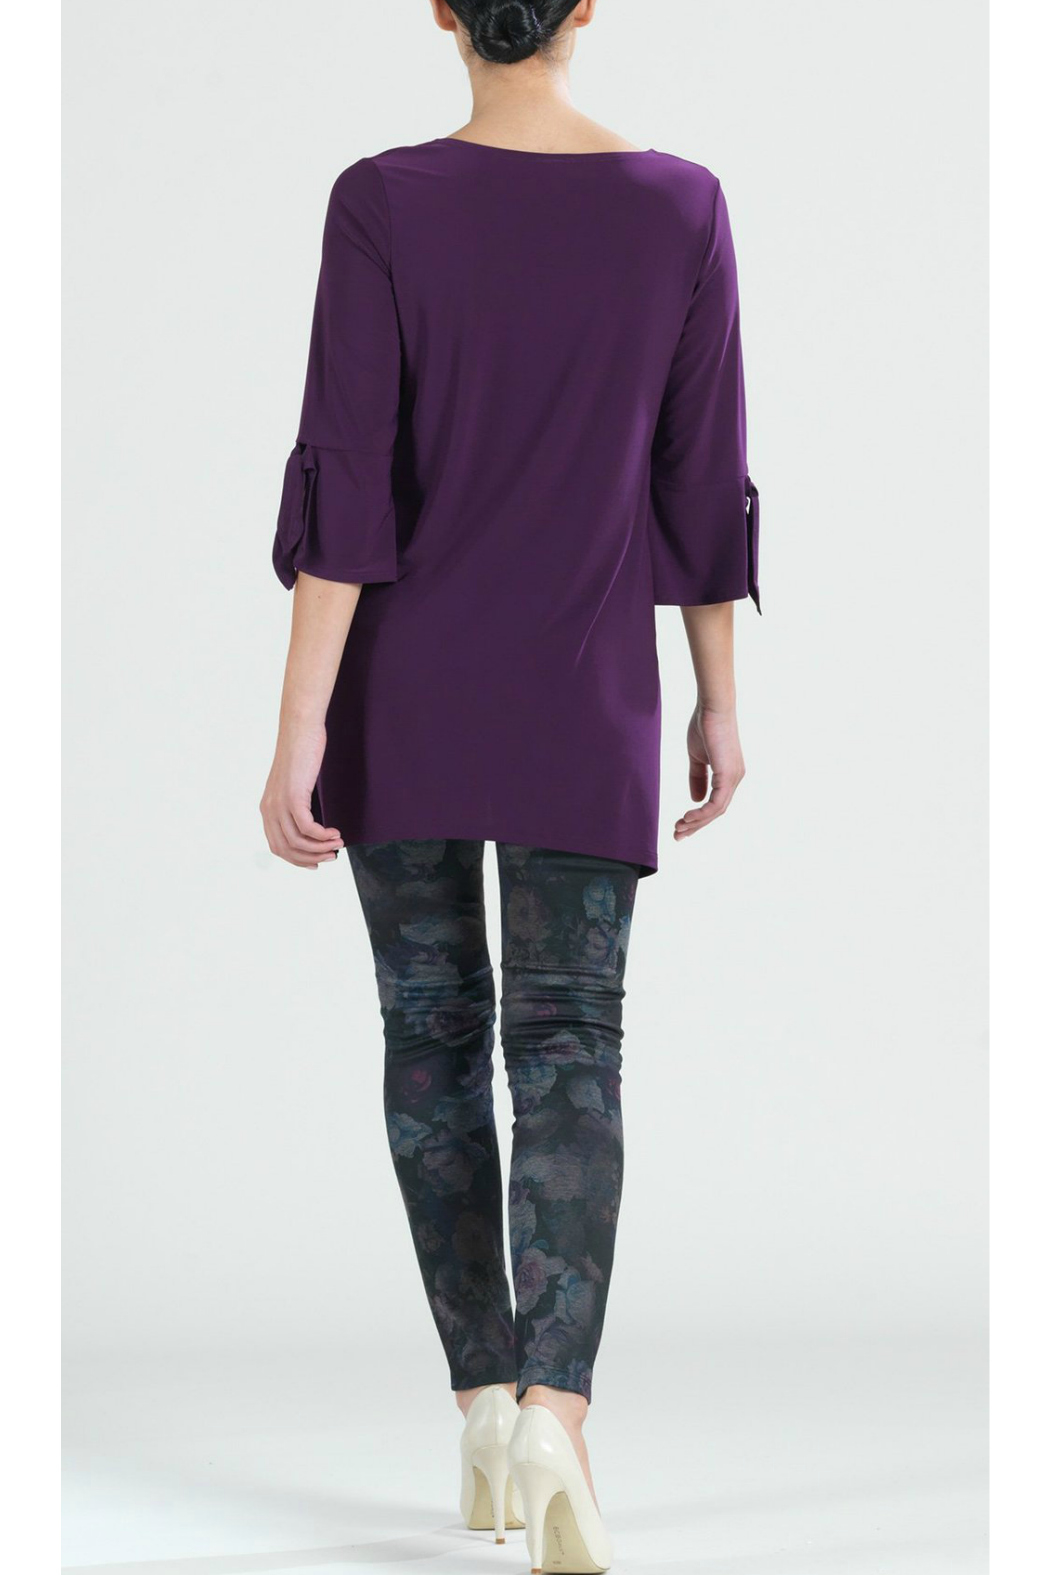 Clara Sunwoo Solid soft knit tunic - Side Cropped Image